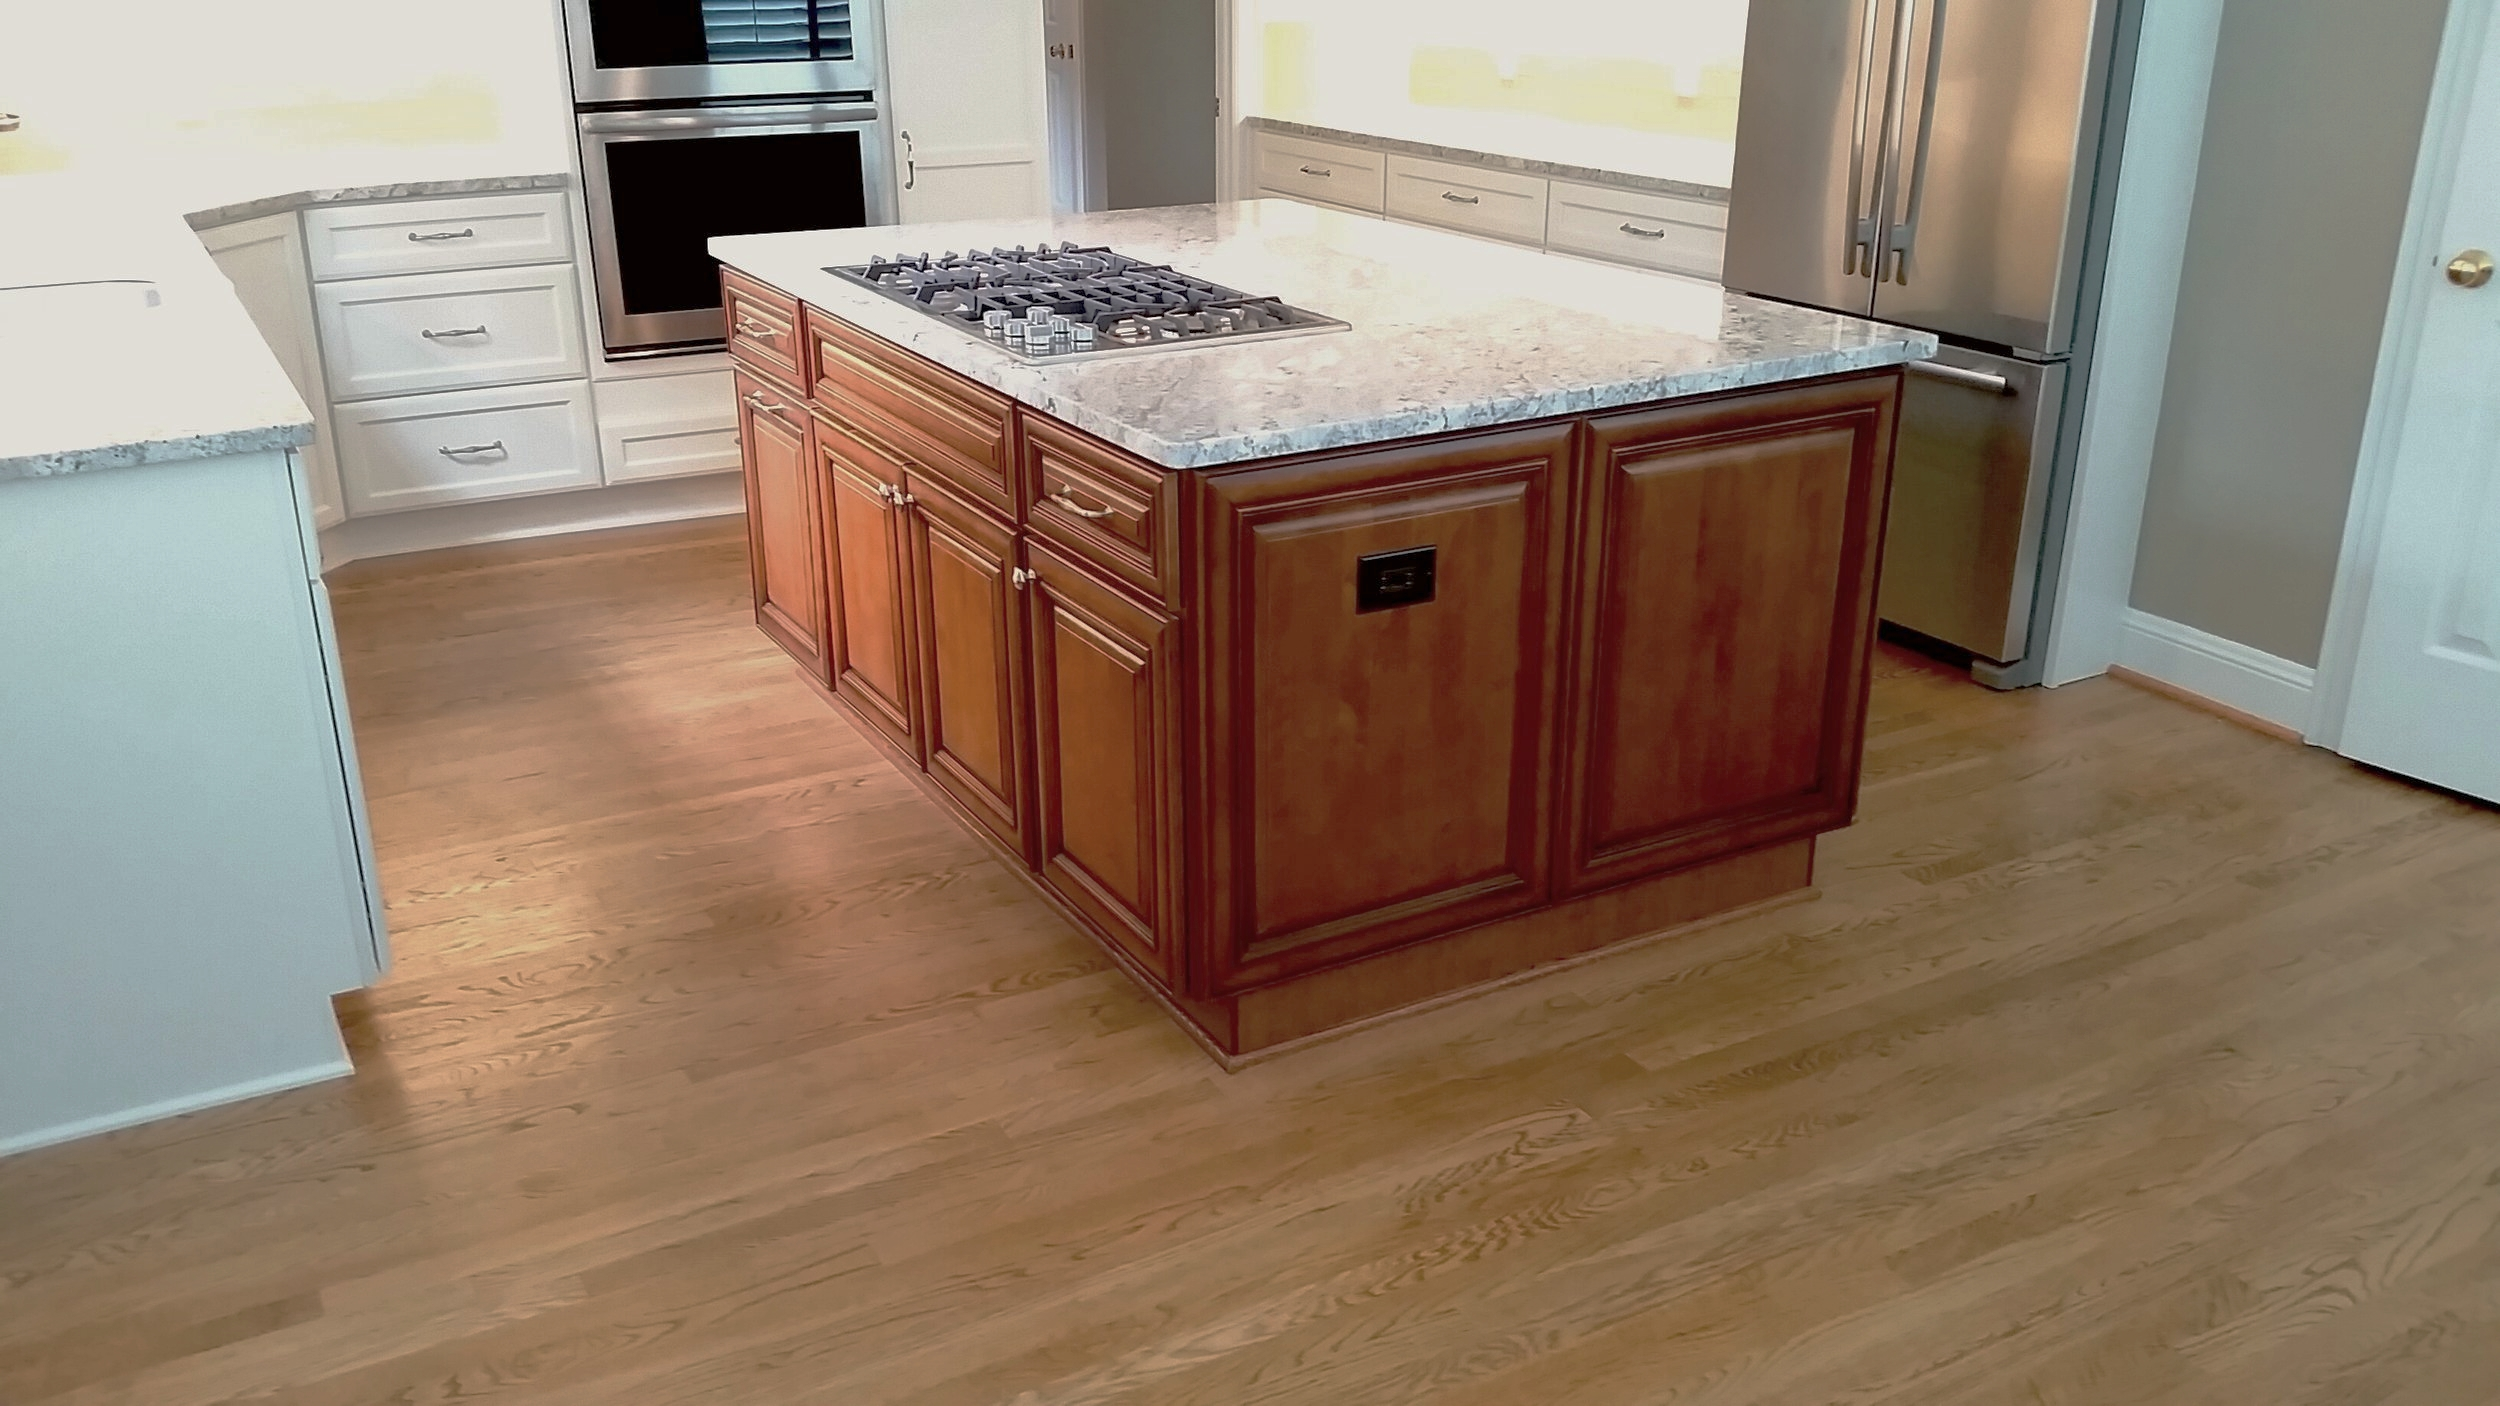 Custom Stained Island with Cooktop, Raised Panel Doors, Drawers, and End-Panels